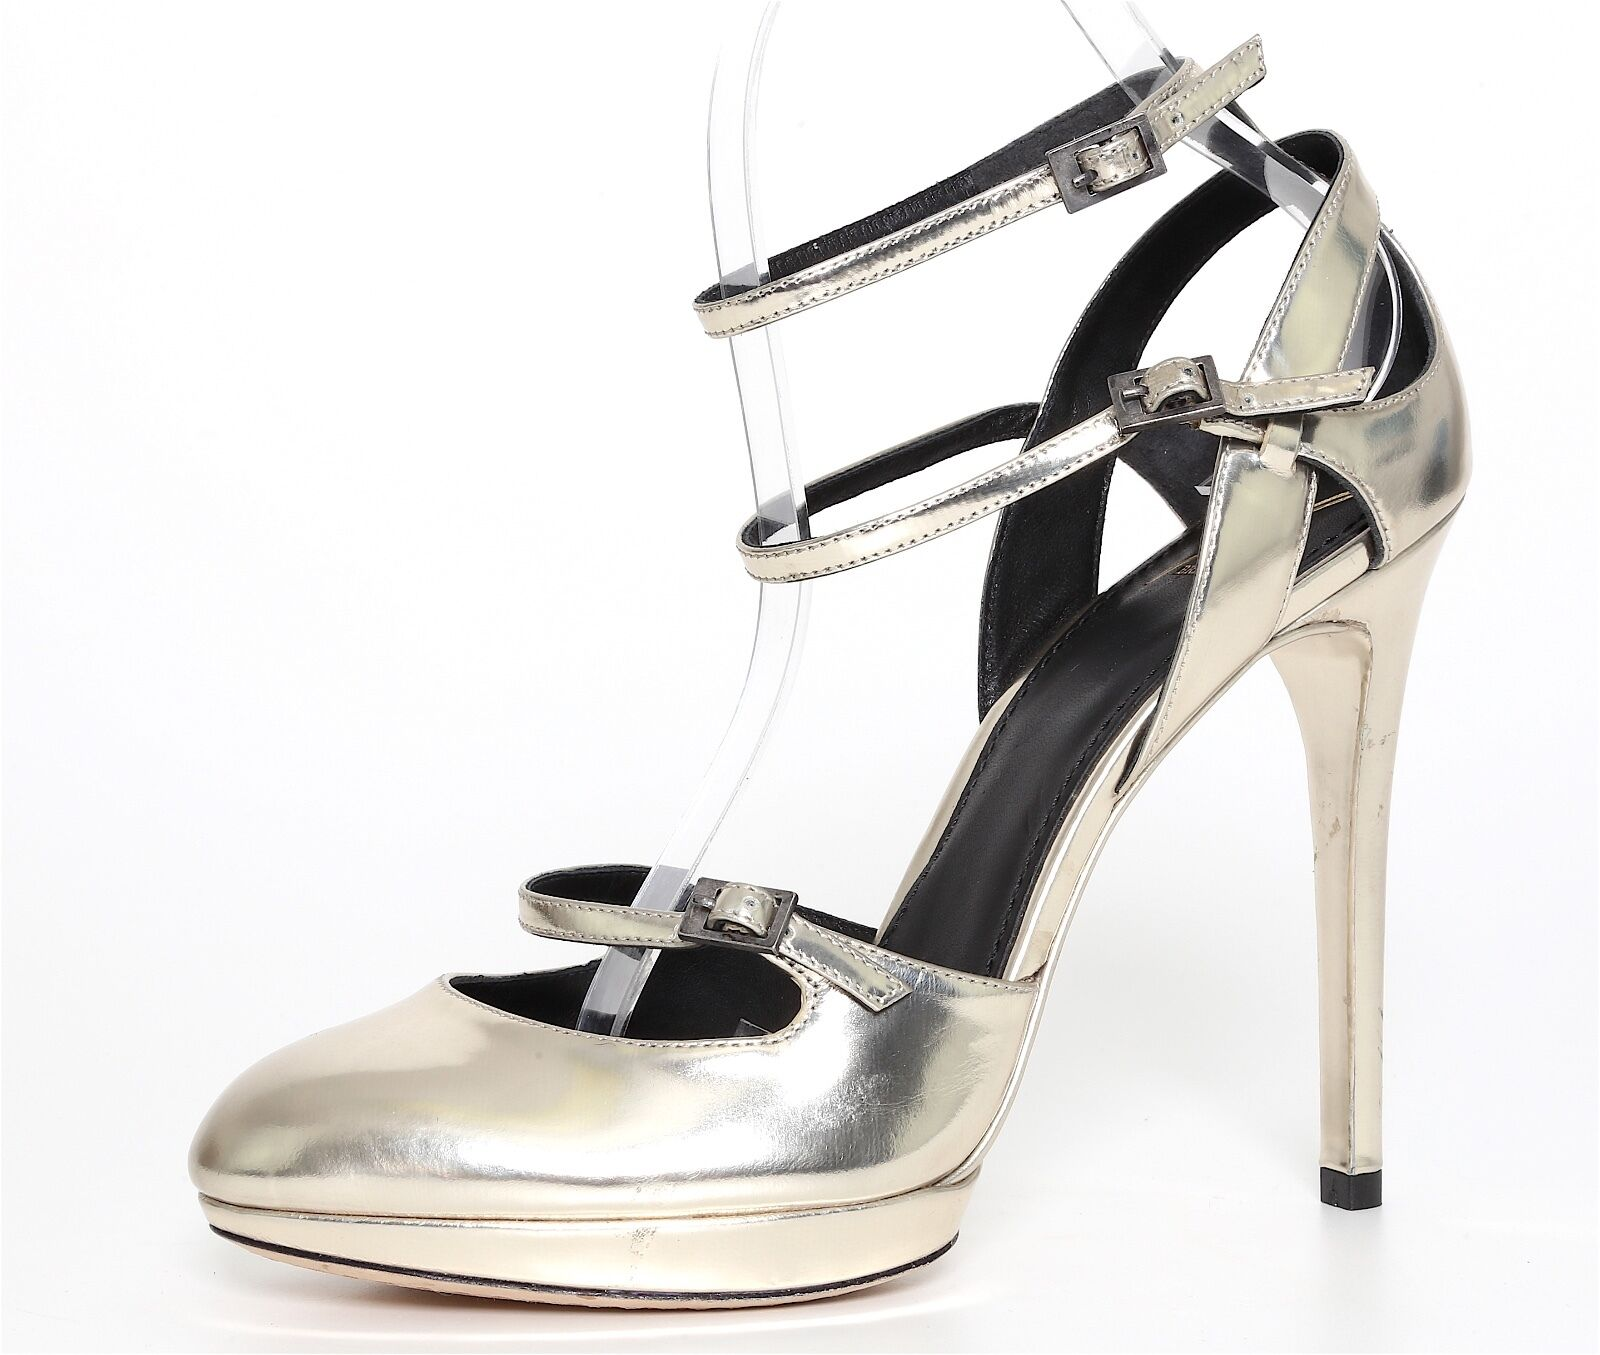 Brian Atwood Atwood Atwood Metallic Leather Pumps femmes Sz 8 2599 6fa993